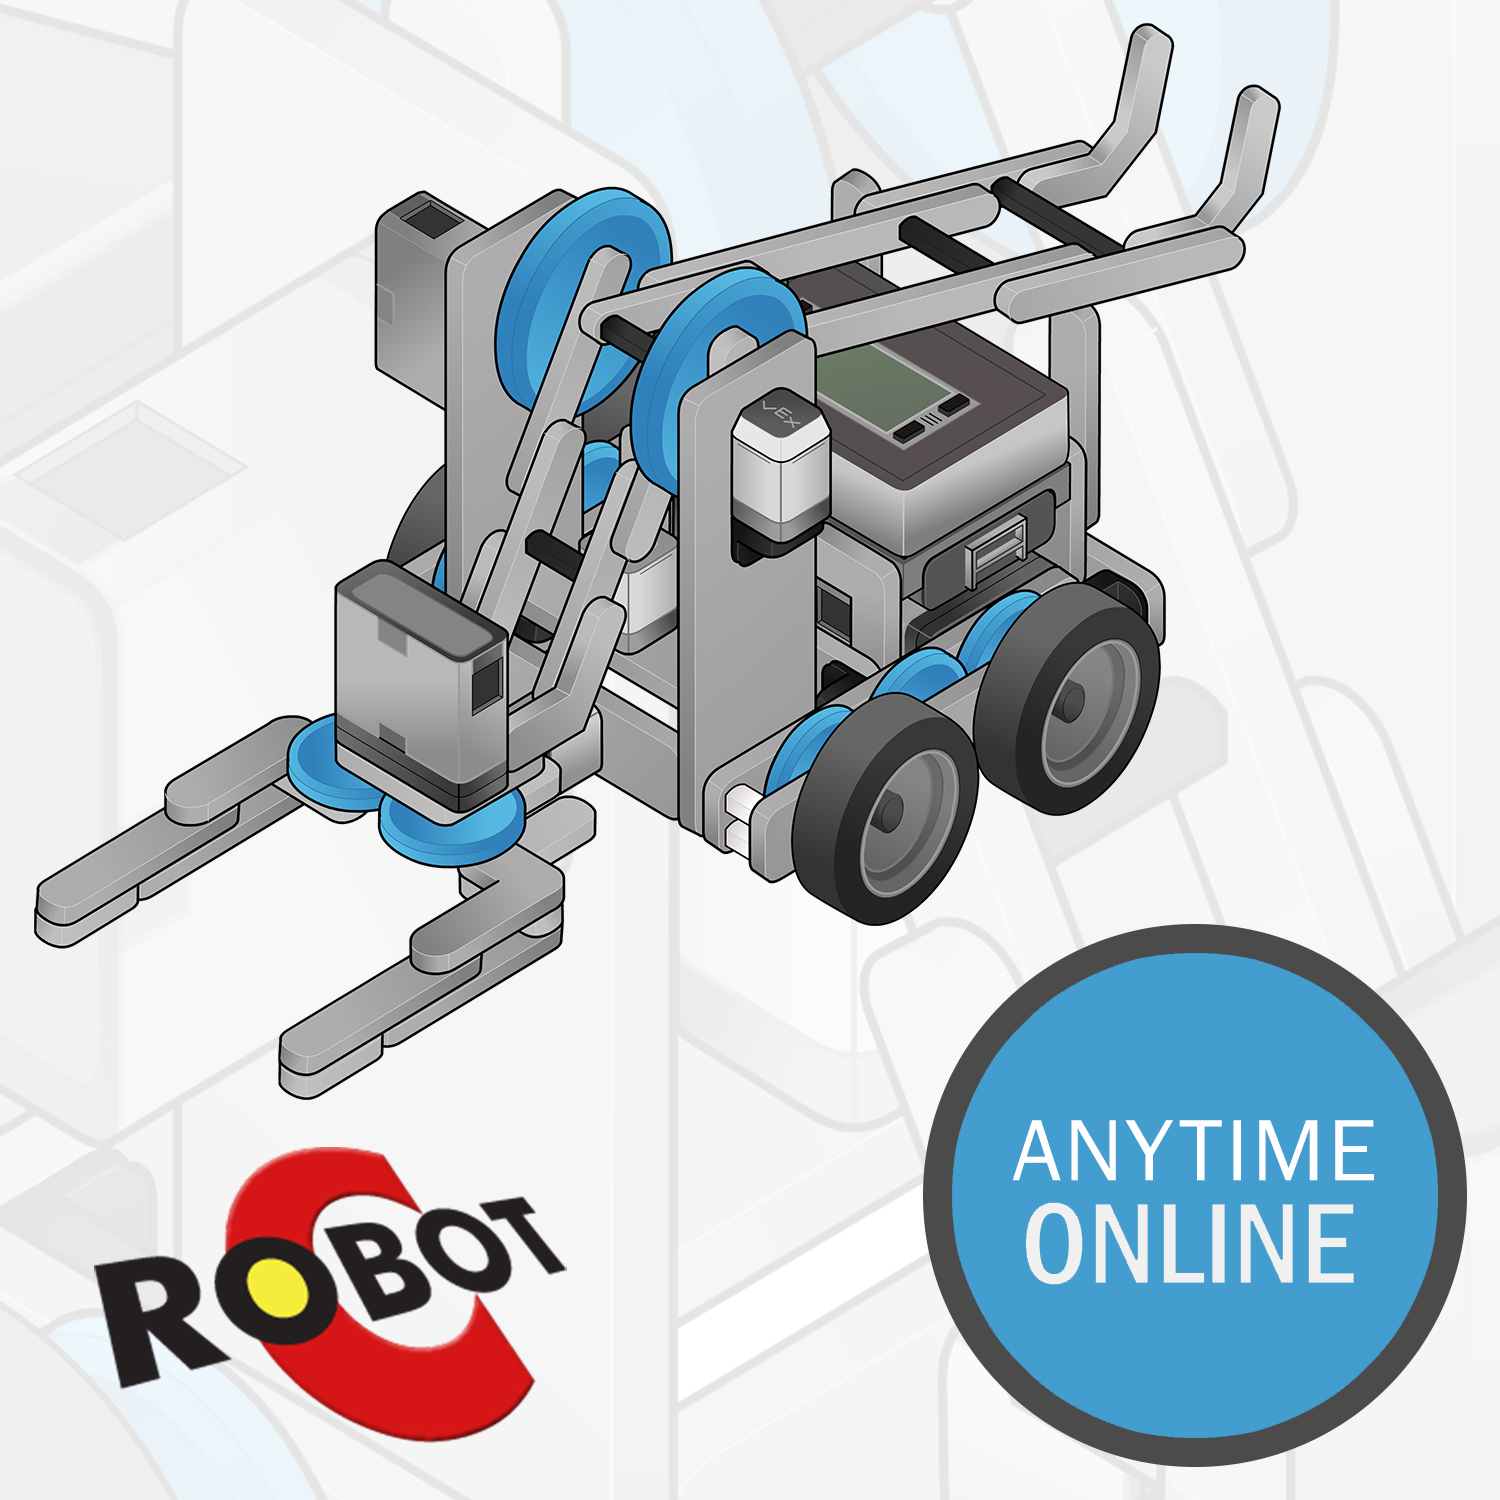 Image For ROBOTC for VEX IQ Online: Anytime (pre-recorded)